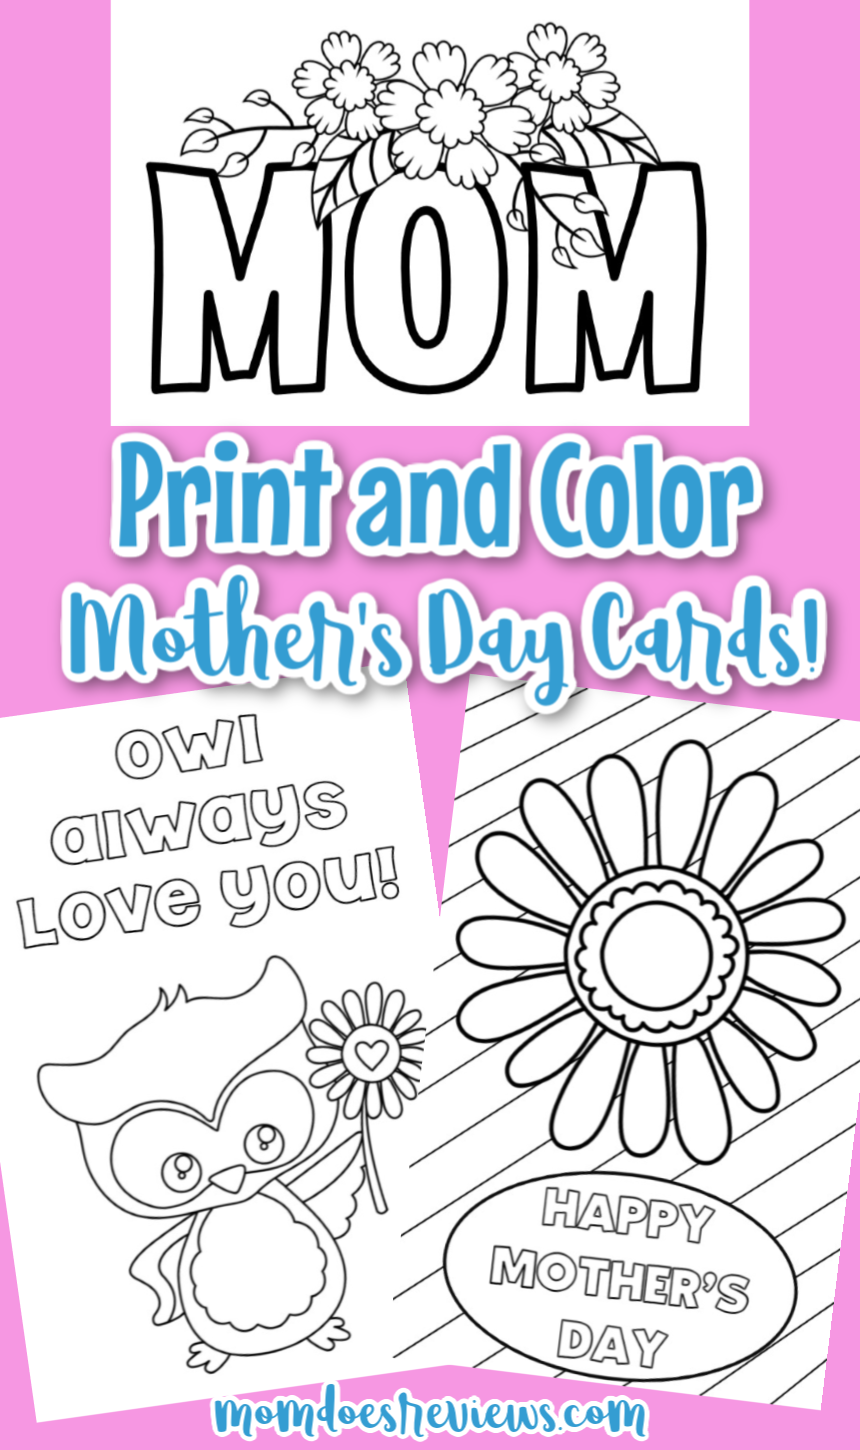 Color Your Own Mother's Day Cards!